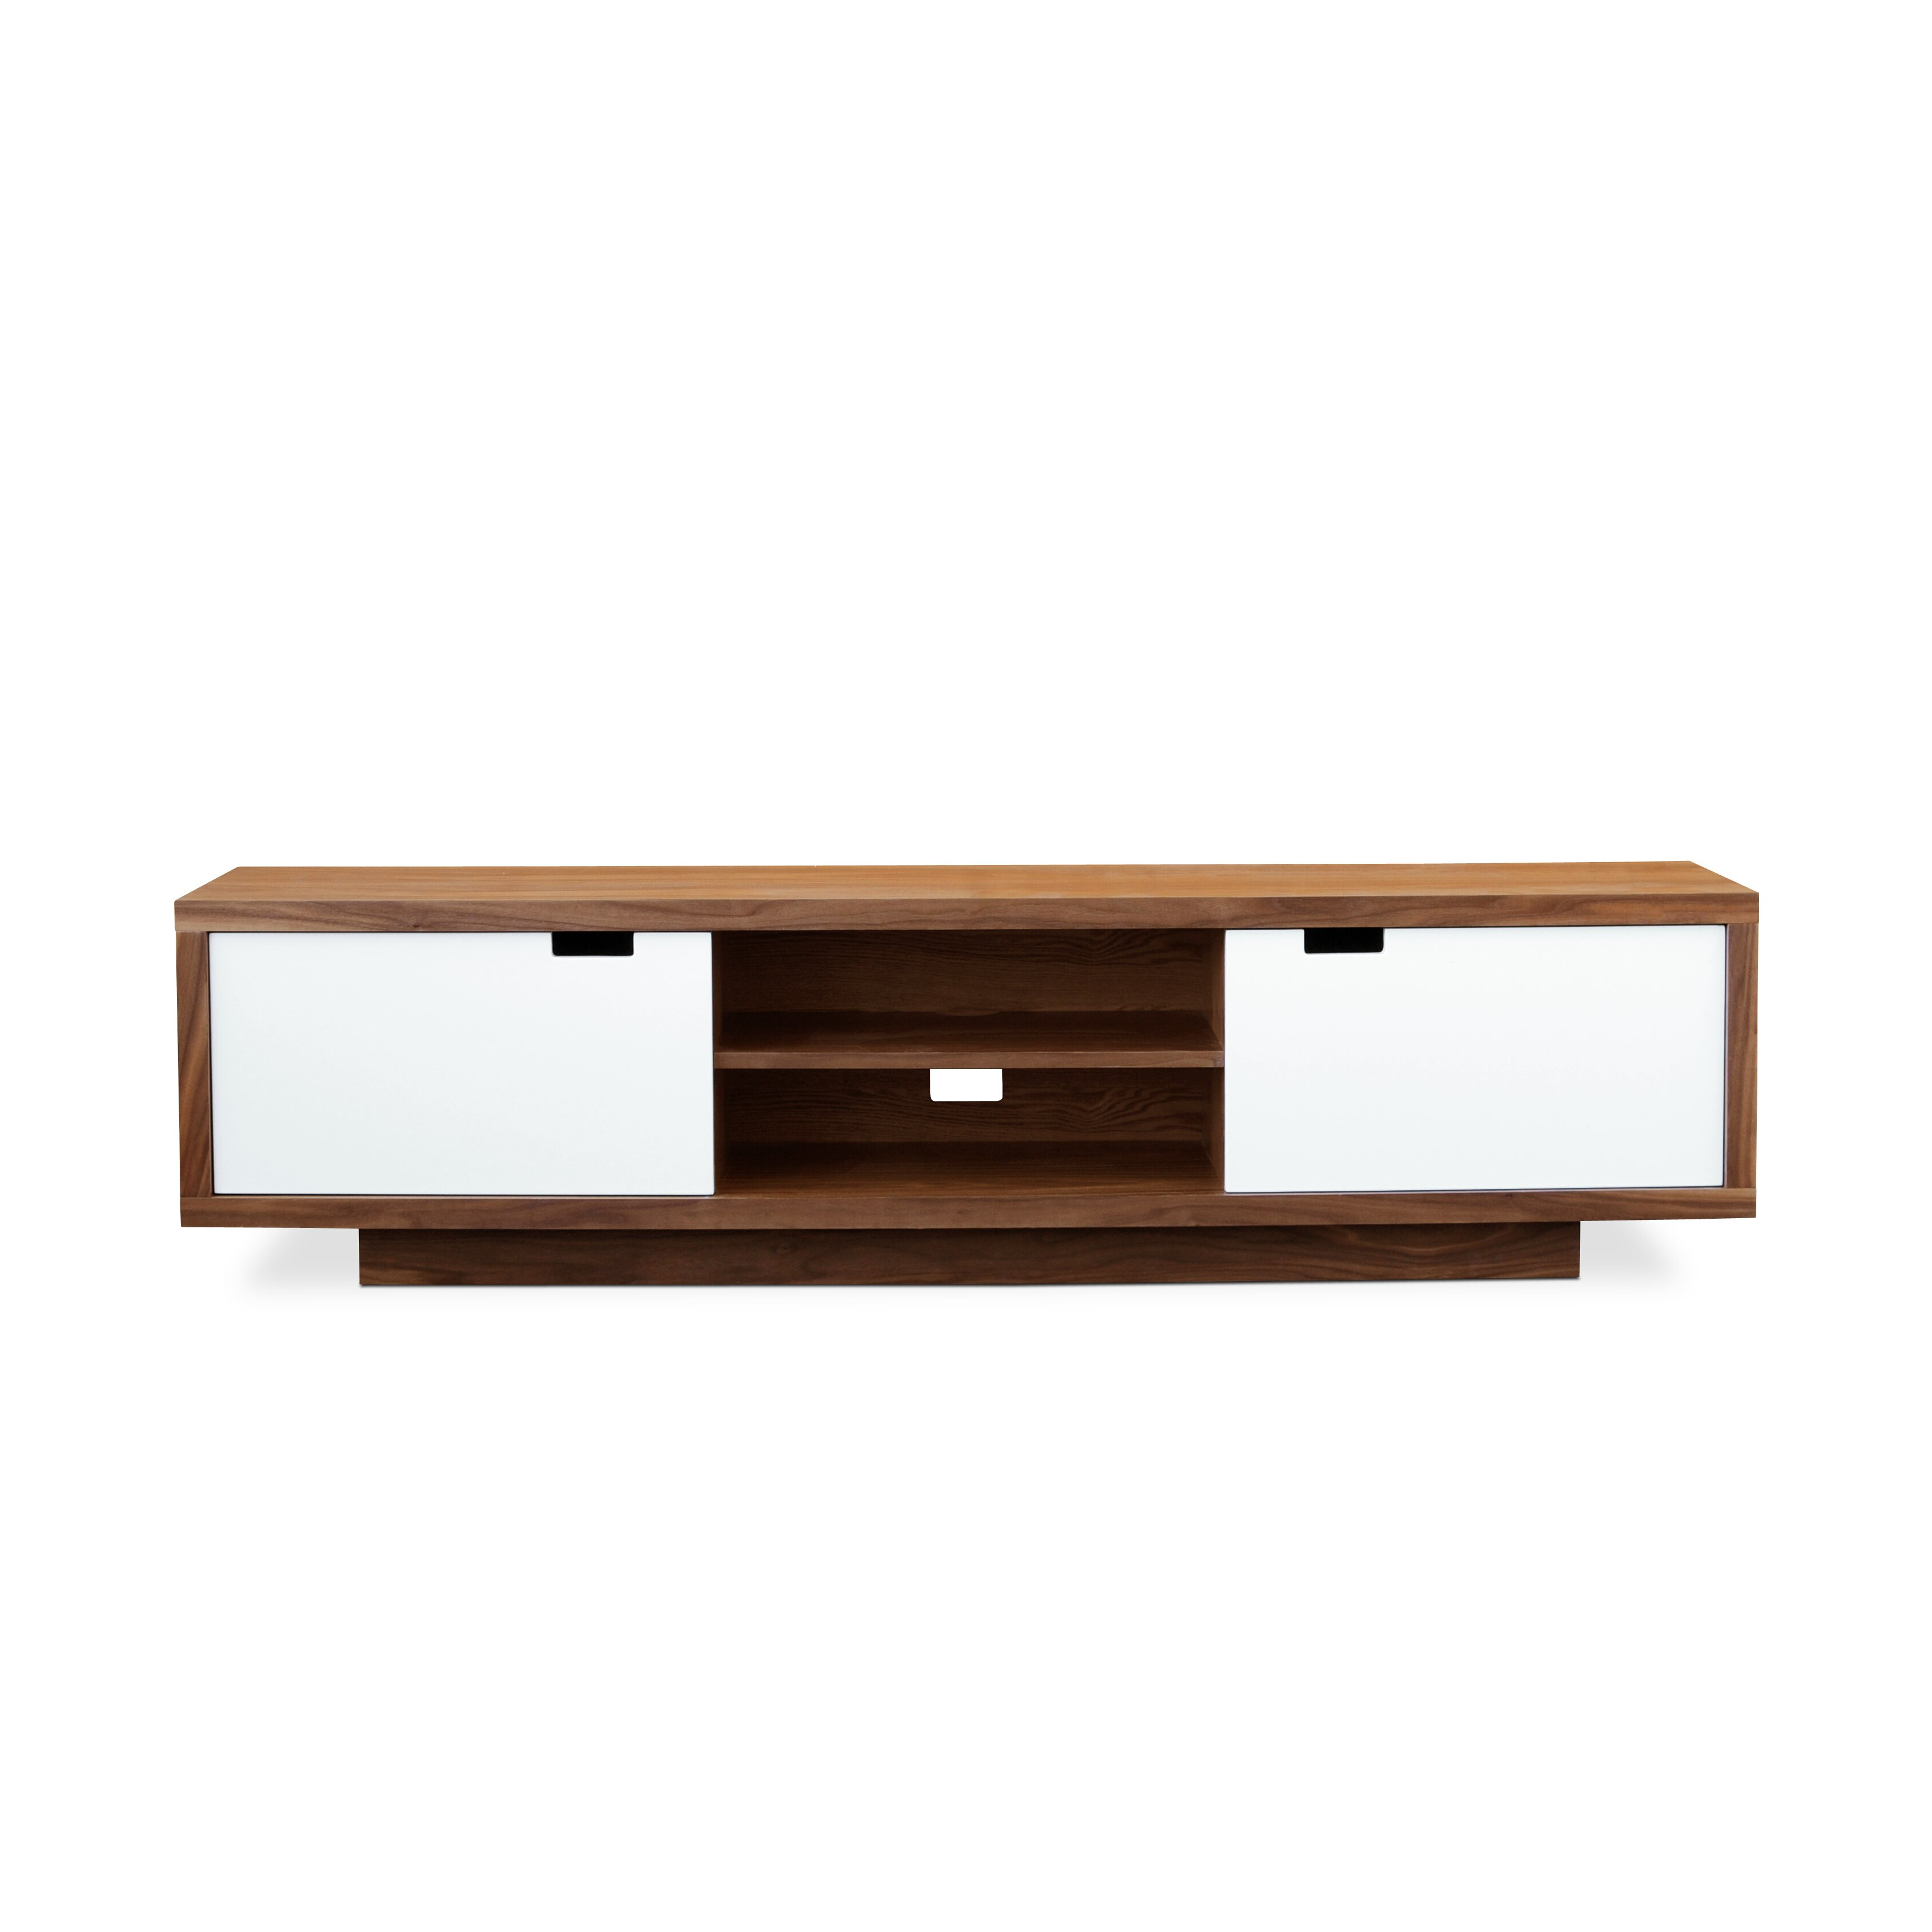 Gus modern wilson tv stand reviews wayfair for Table tv moderne